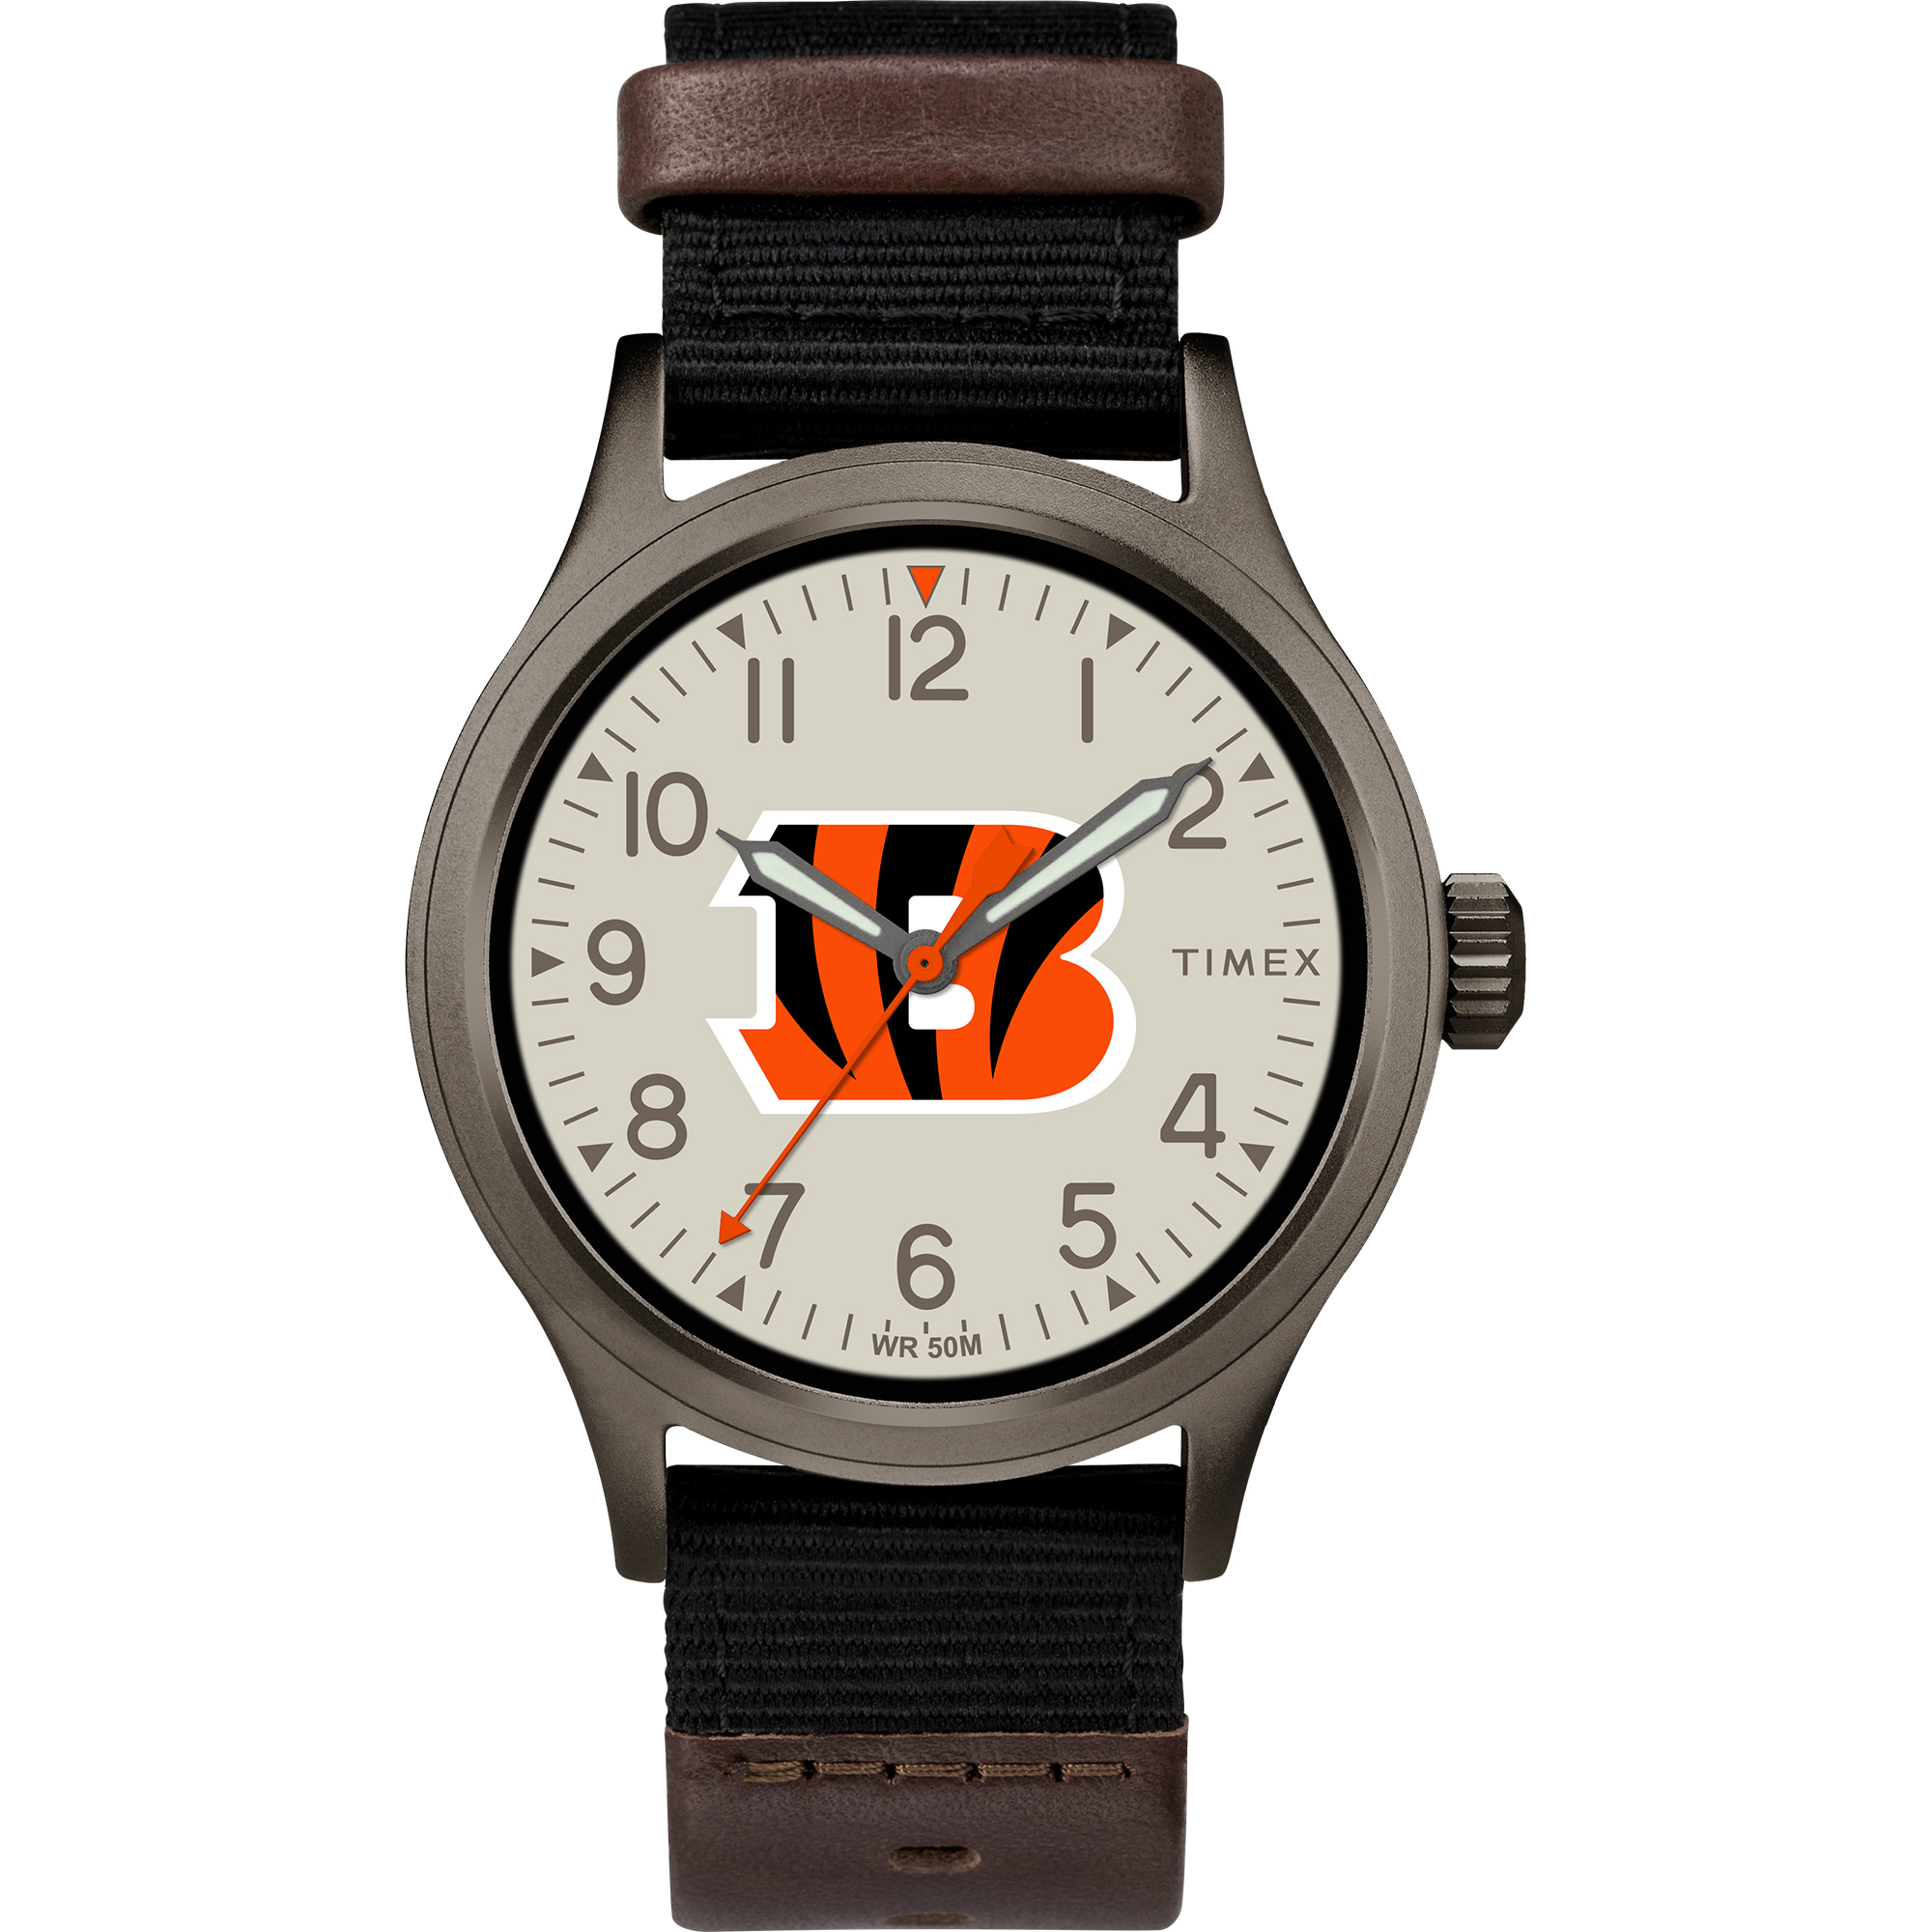 Timex - NFL Tribute Collection Clutch Men's Watch, Cincinnati Bengals